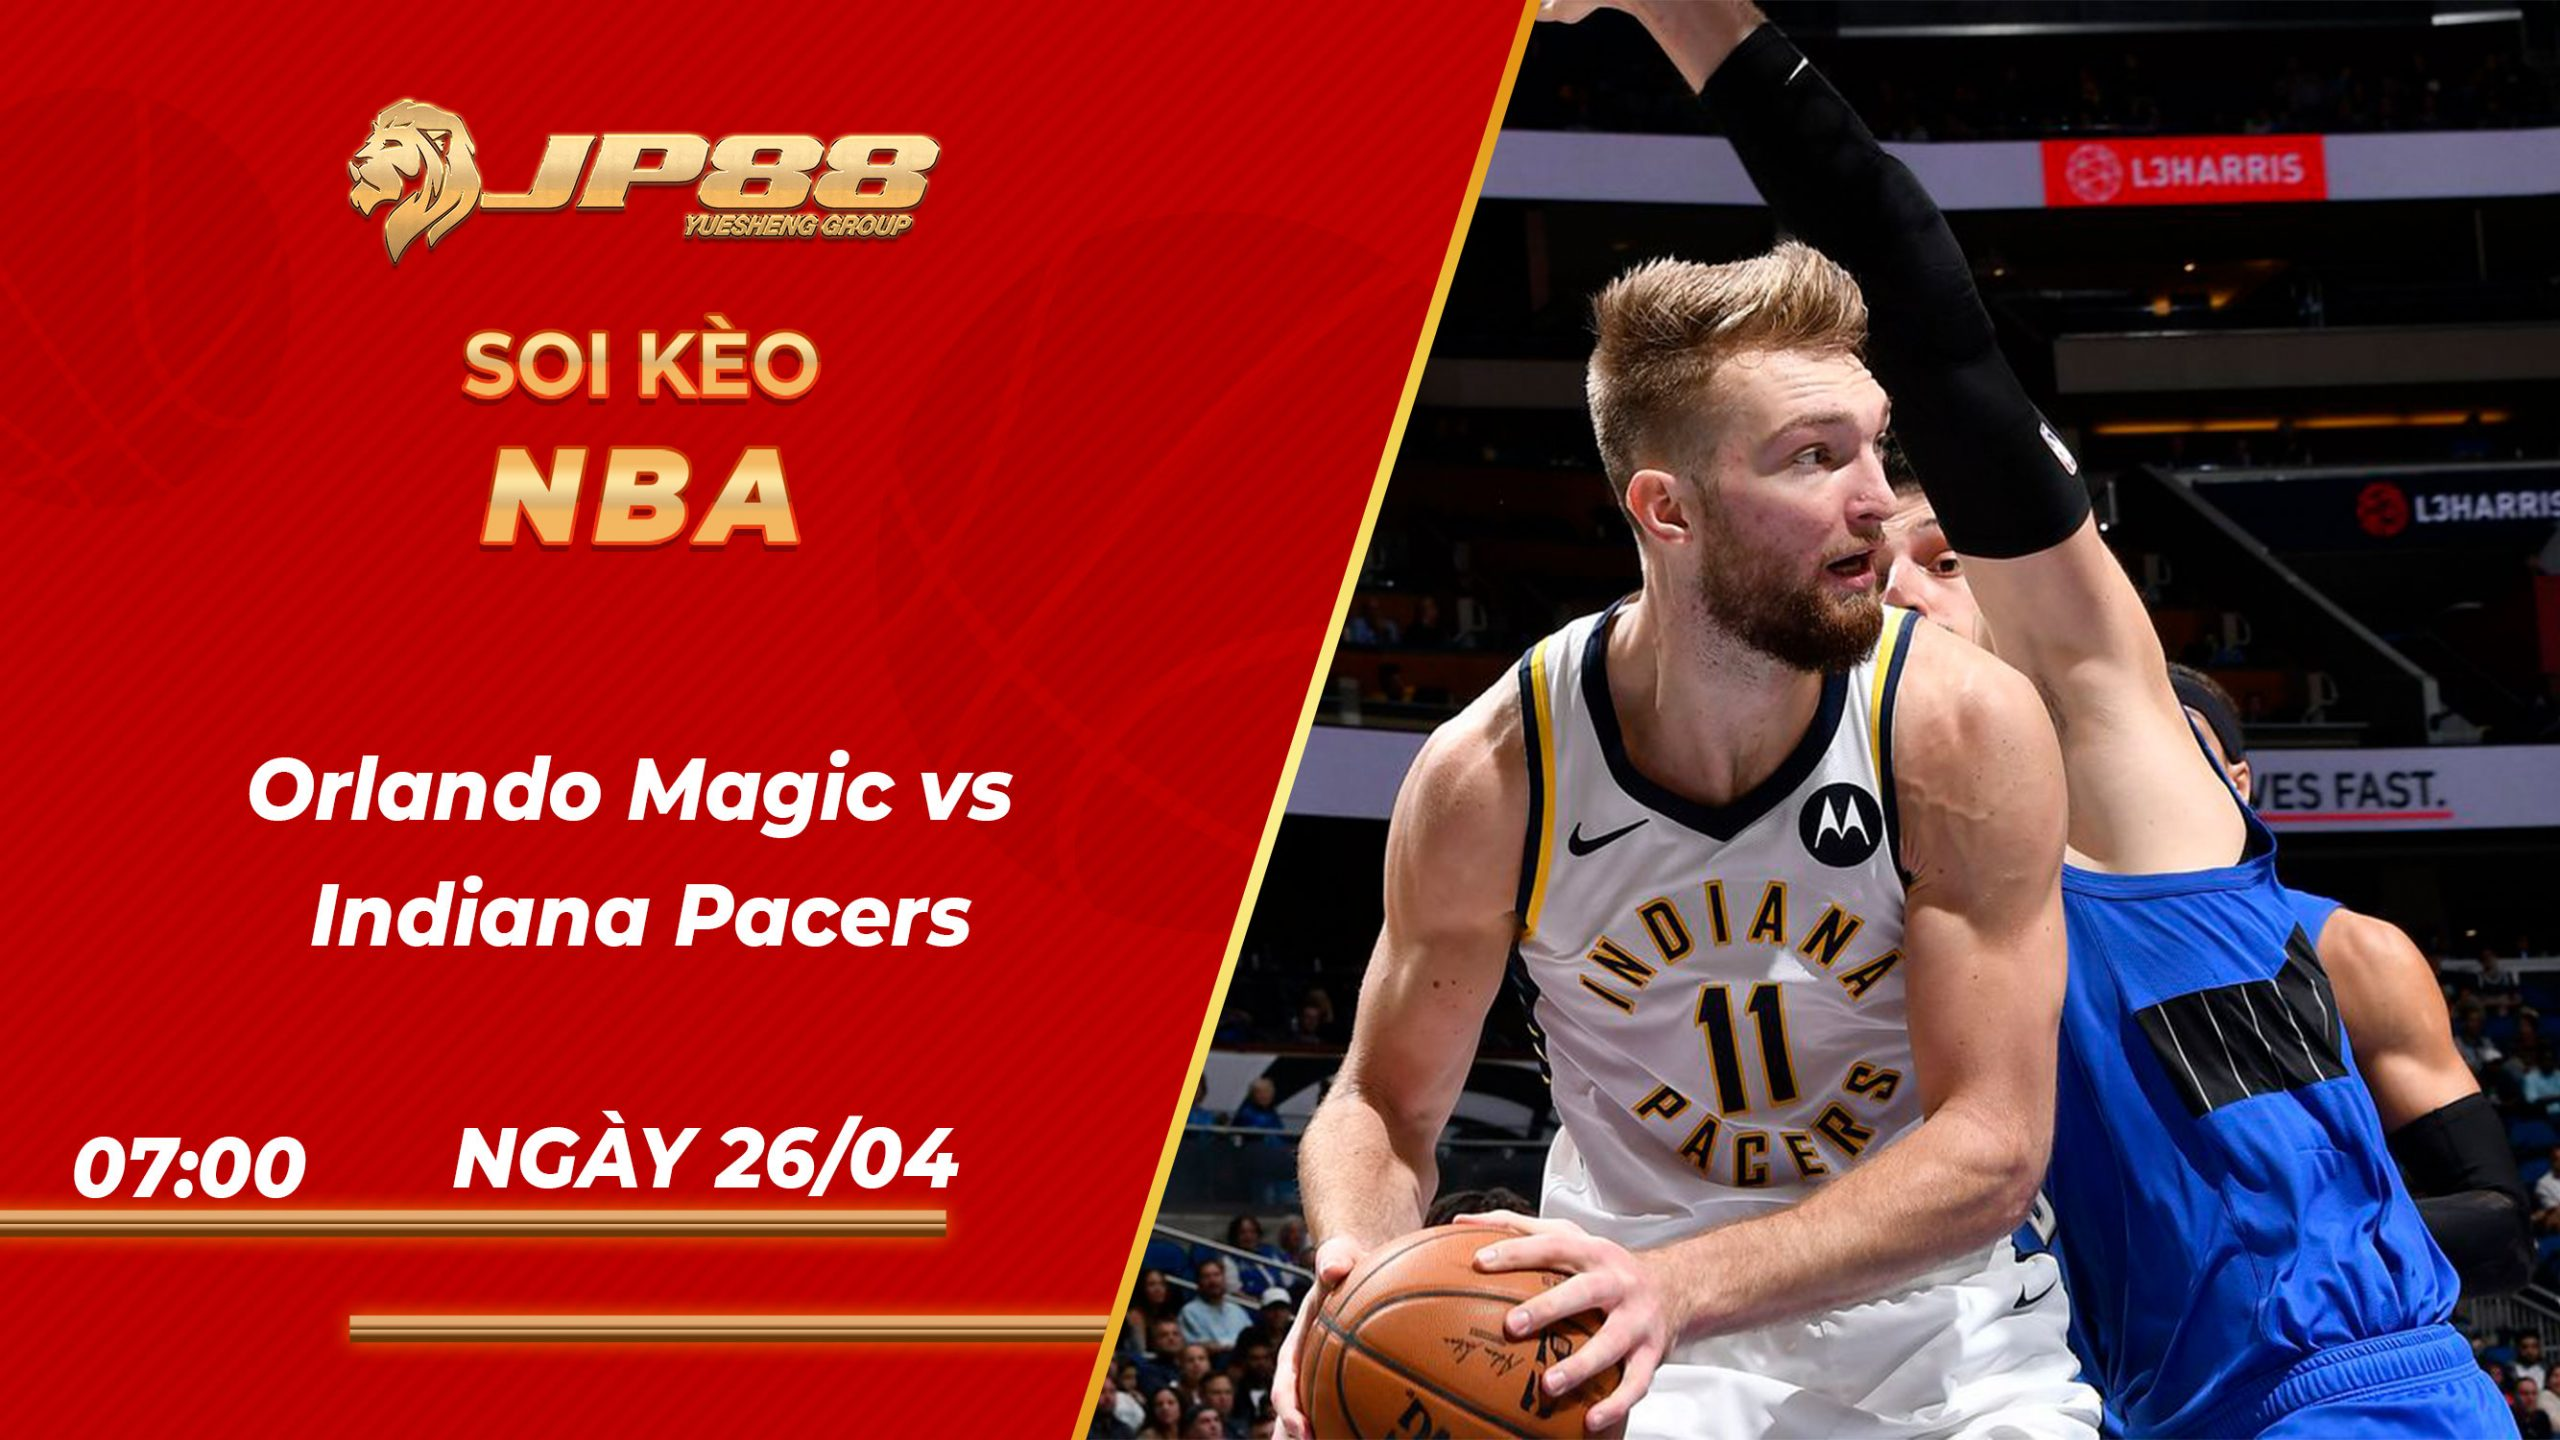 Soi kèo bóng rổ Orlando Magic vs Indiana Pacers 07h00 10/04/2021 – NBA